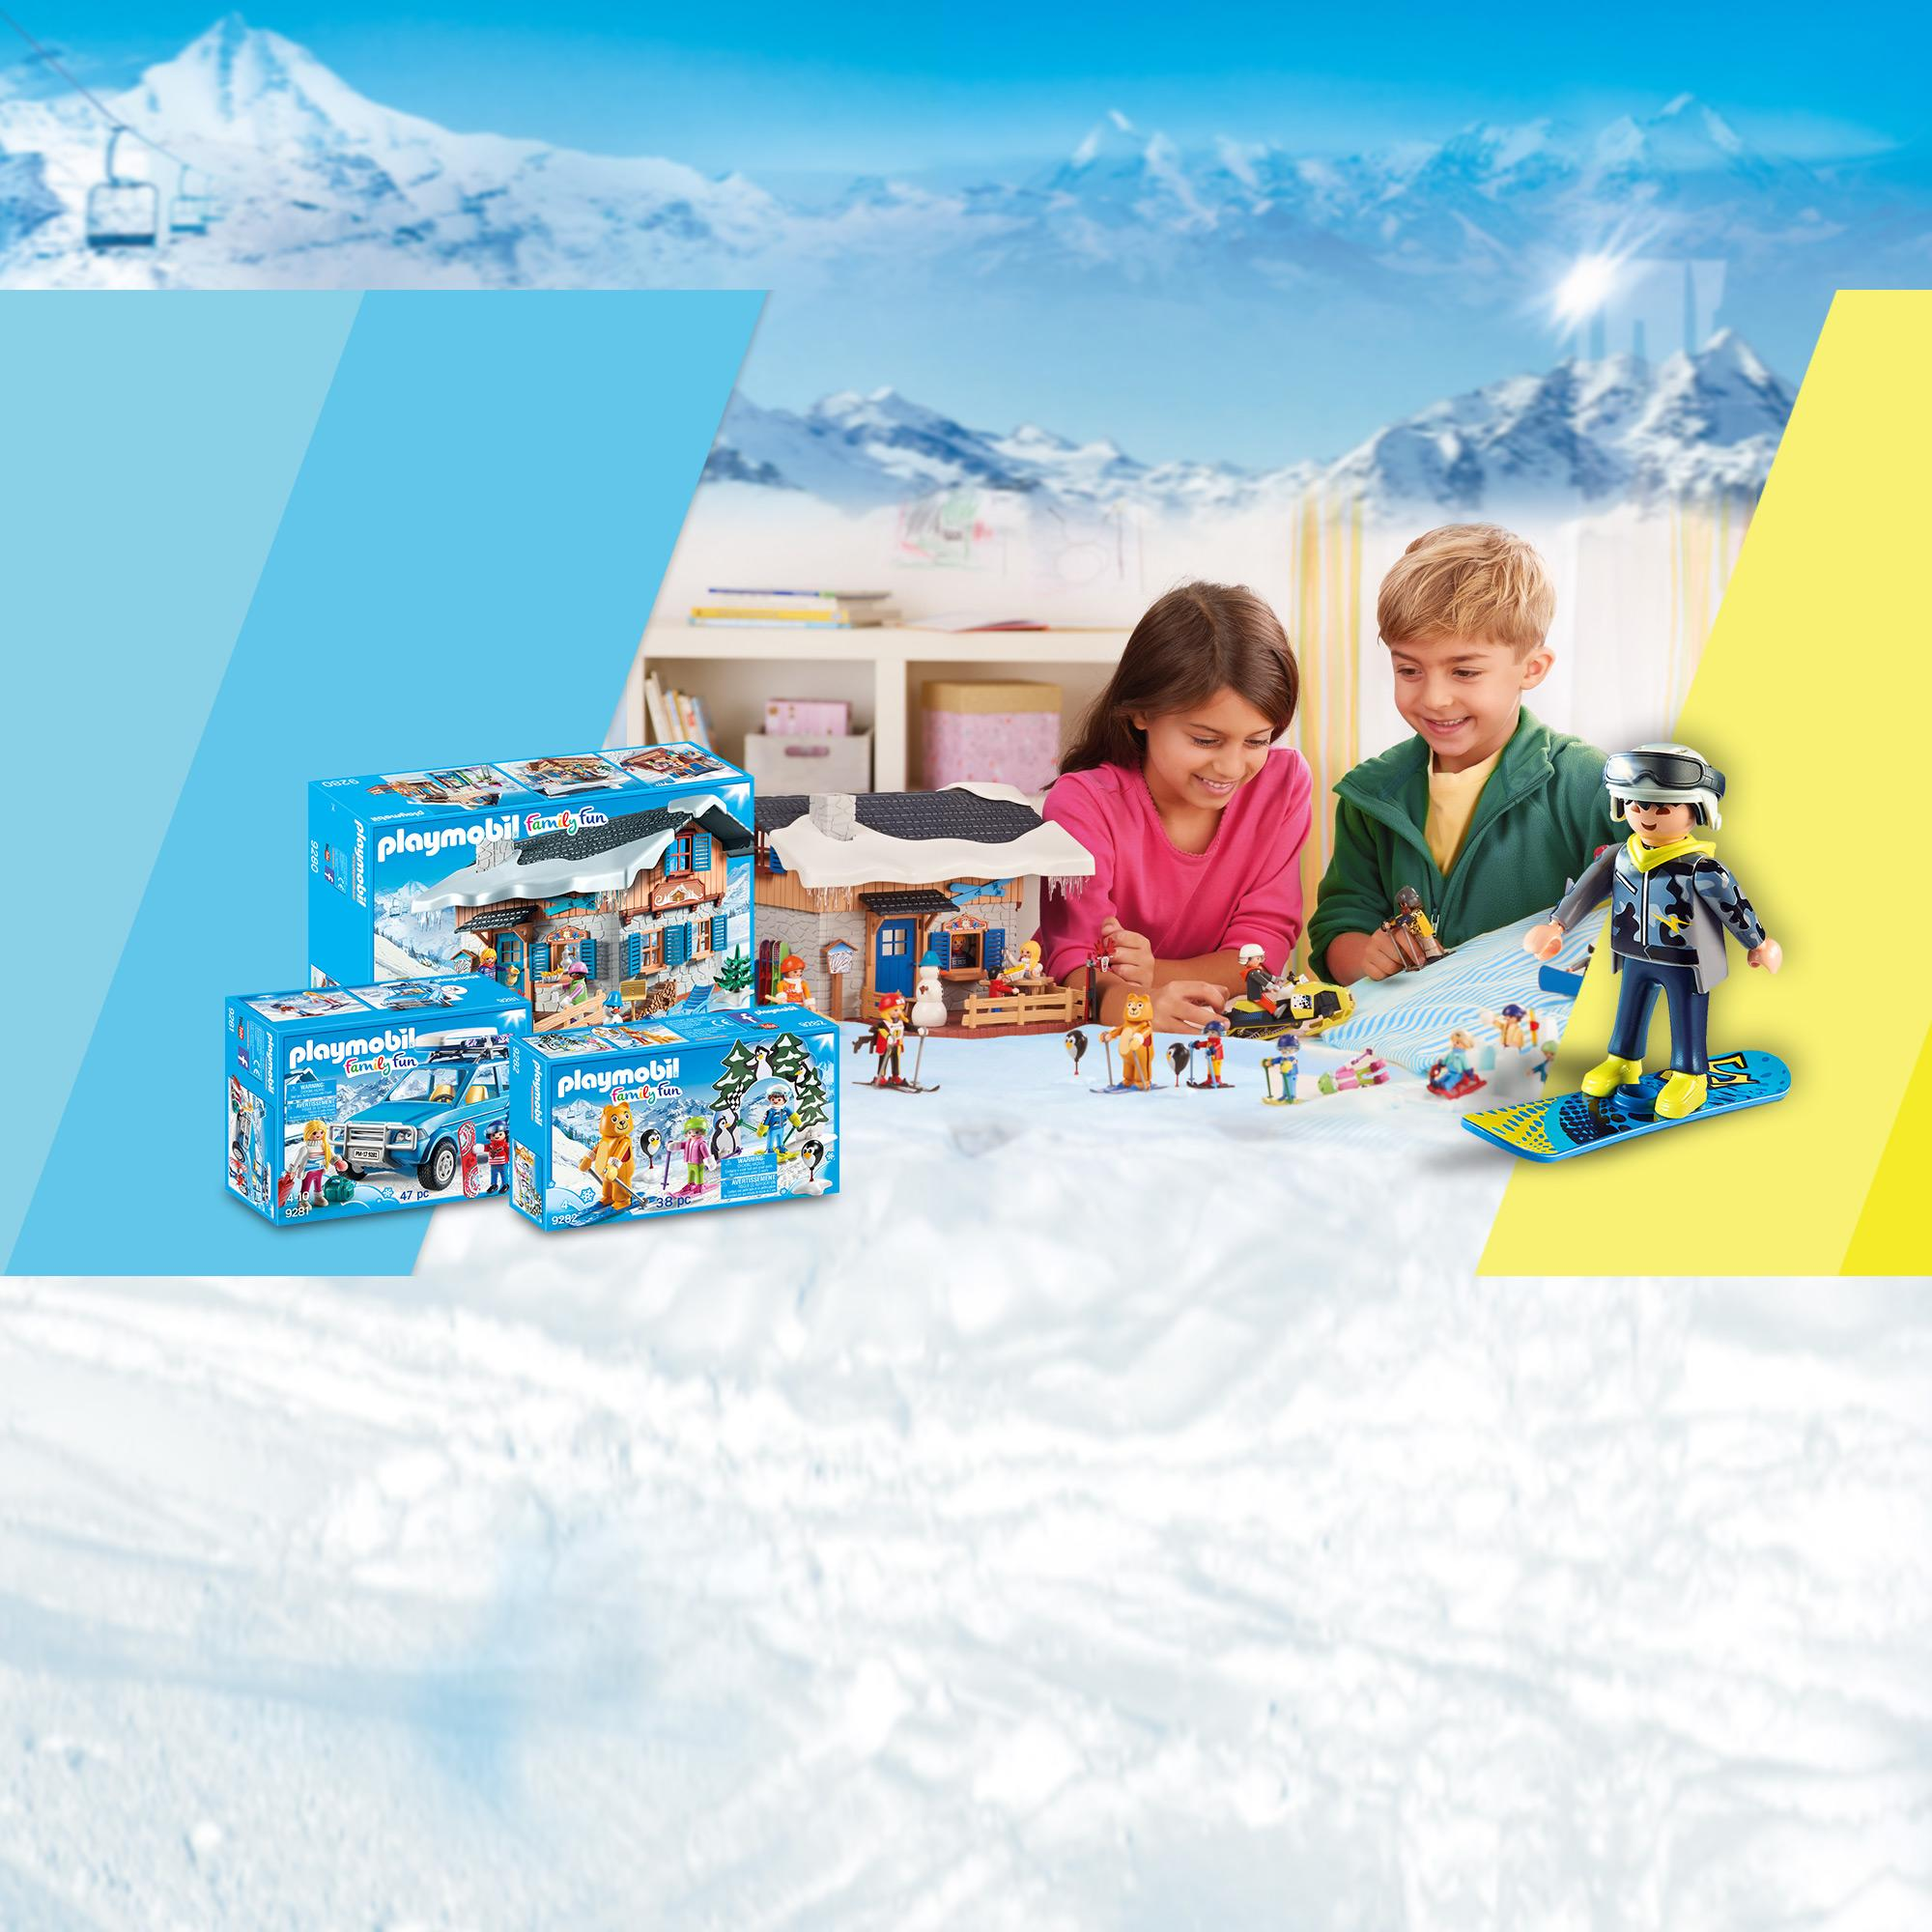 SHOP_FAMILYFUN_WINTERSPORT_2018_US_3X2